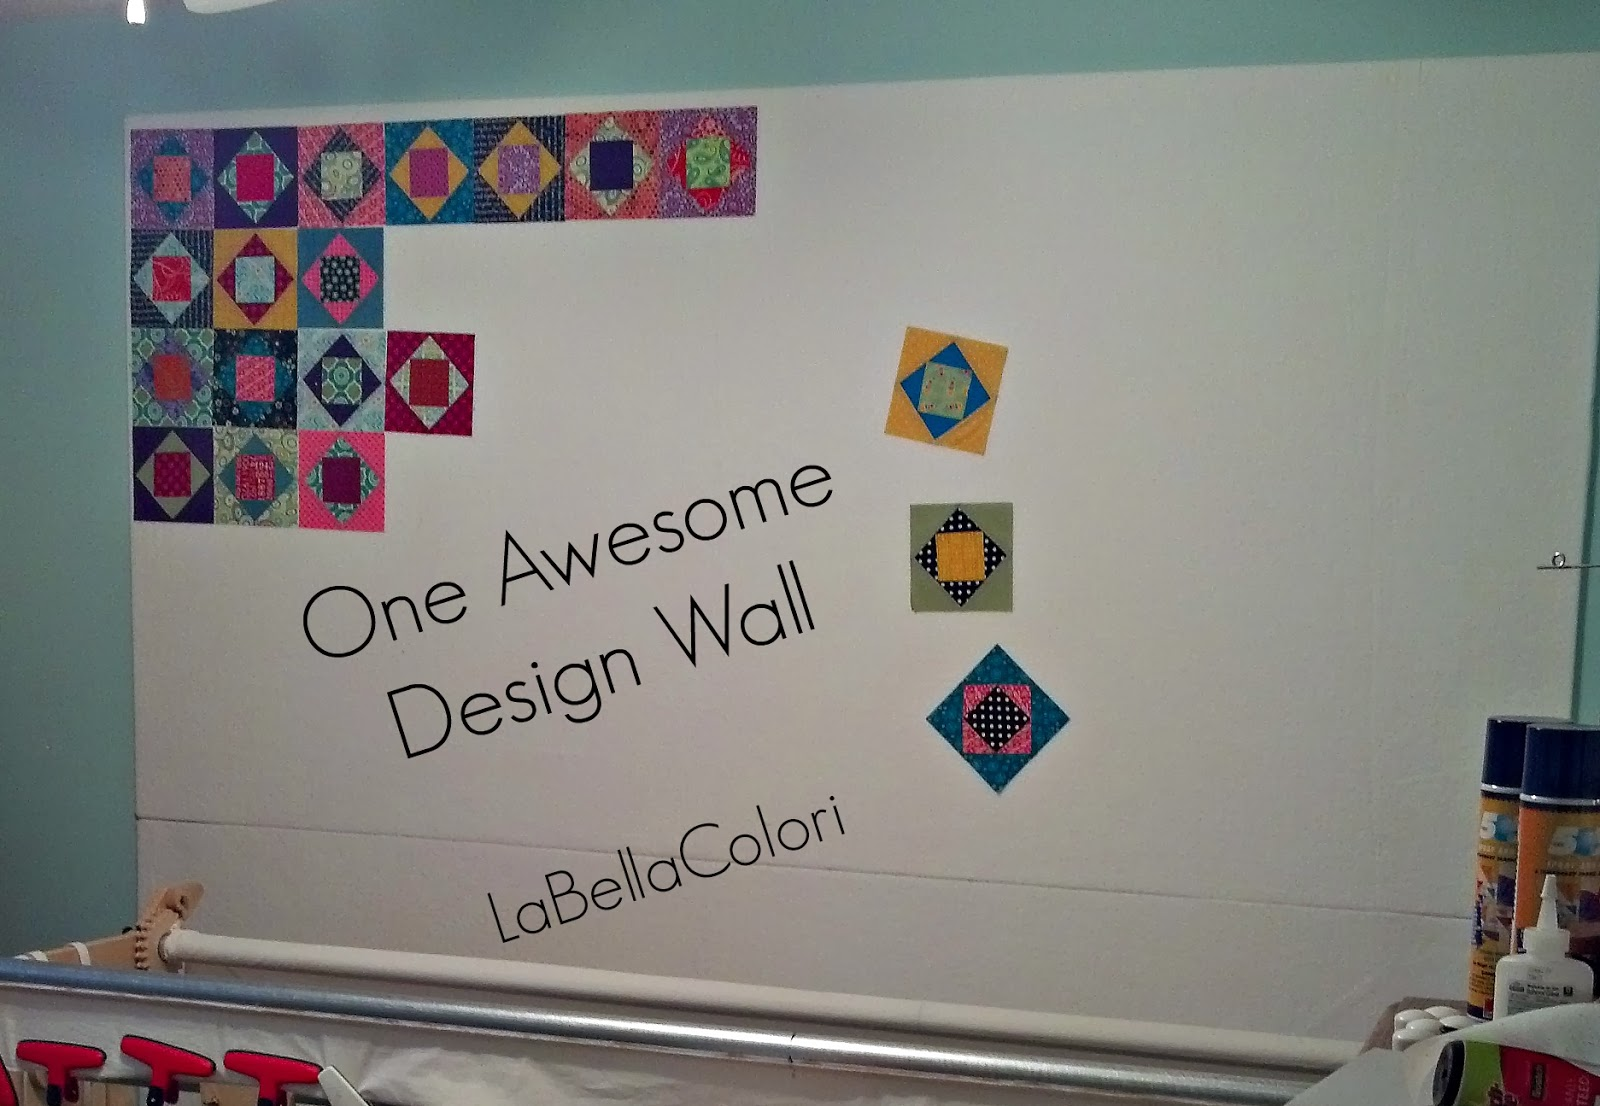 Design Wall by LaBellaColori Kira Bell